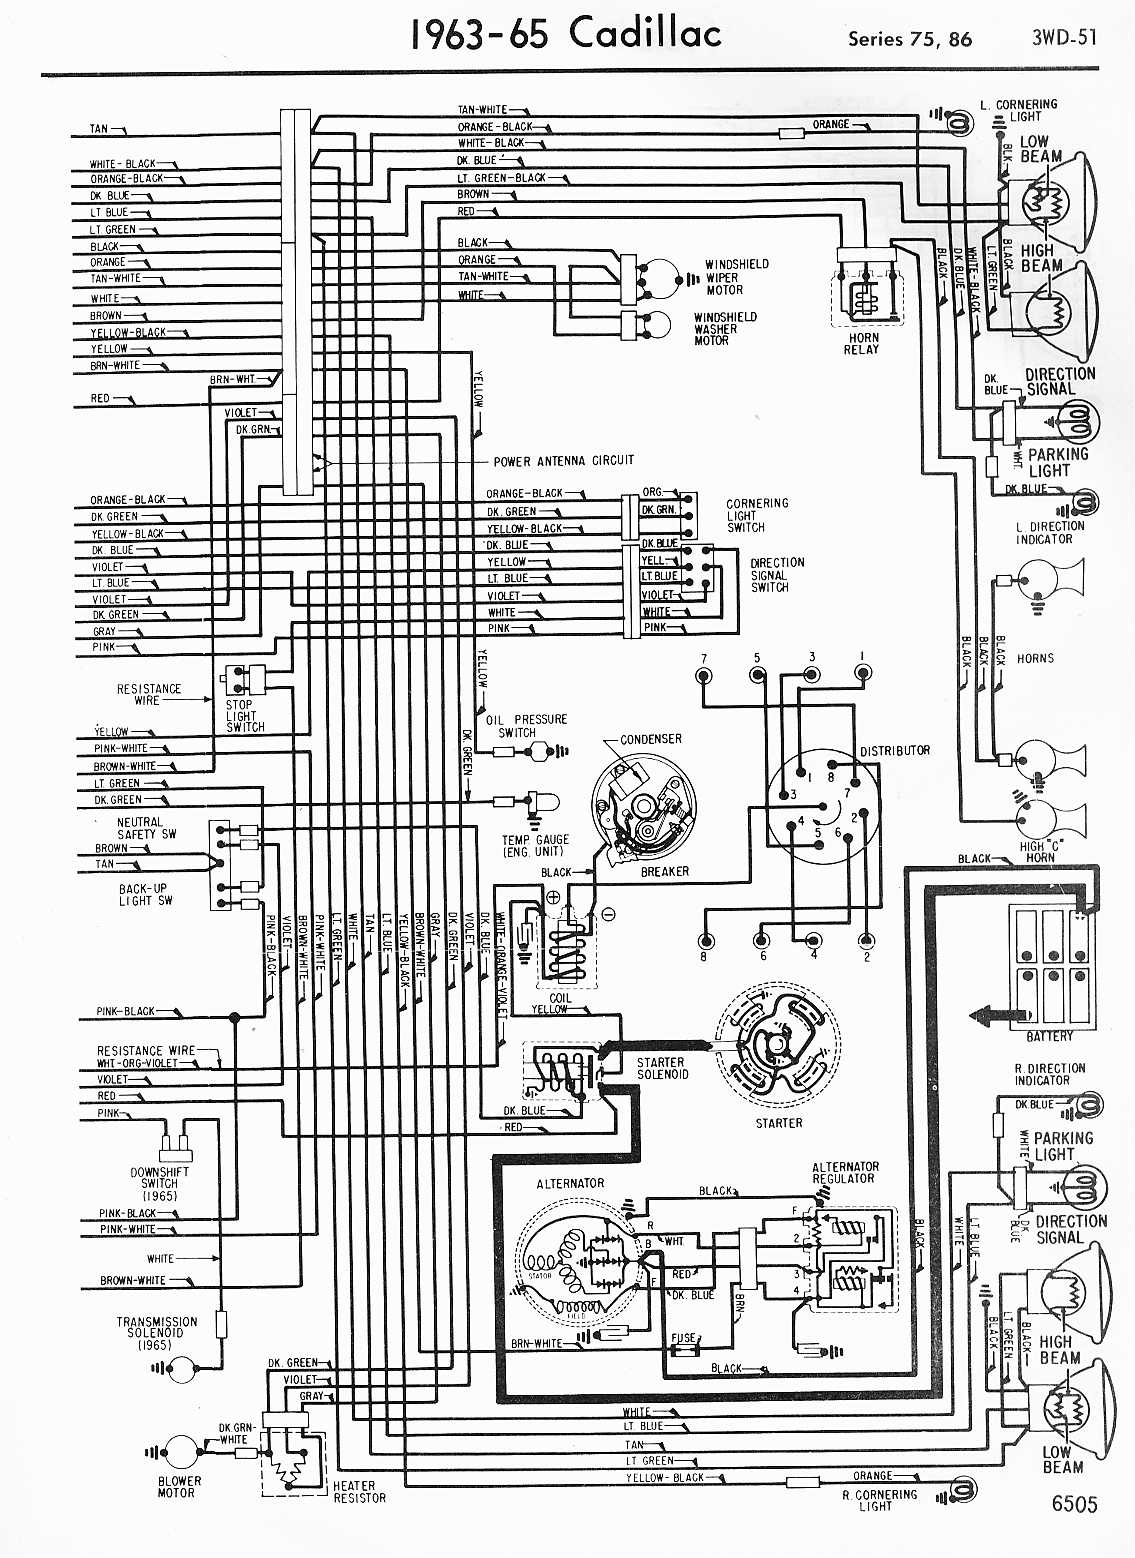 2008 Cadillac Dts Fuse Box Trusted Wiring Diagram Pontiac Grand Prix Location Custom U2022